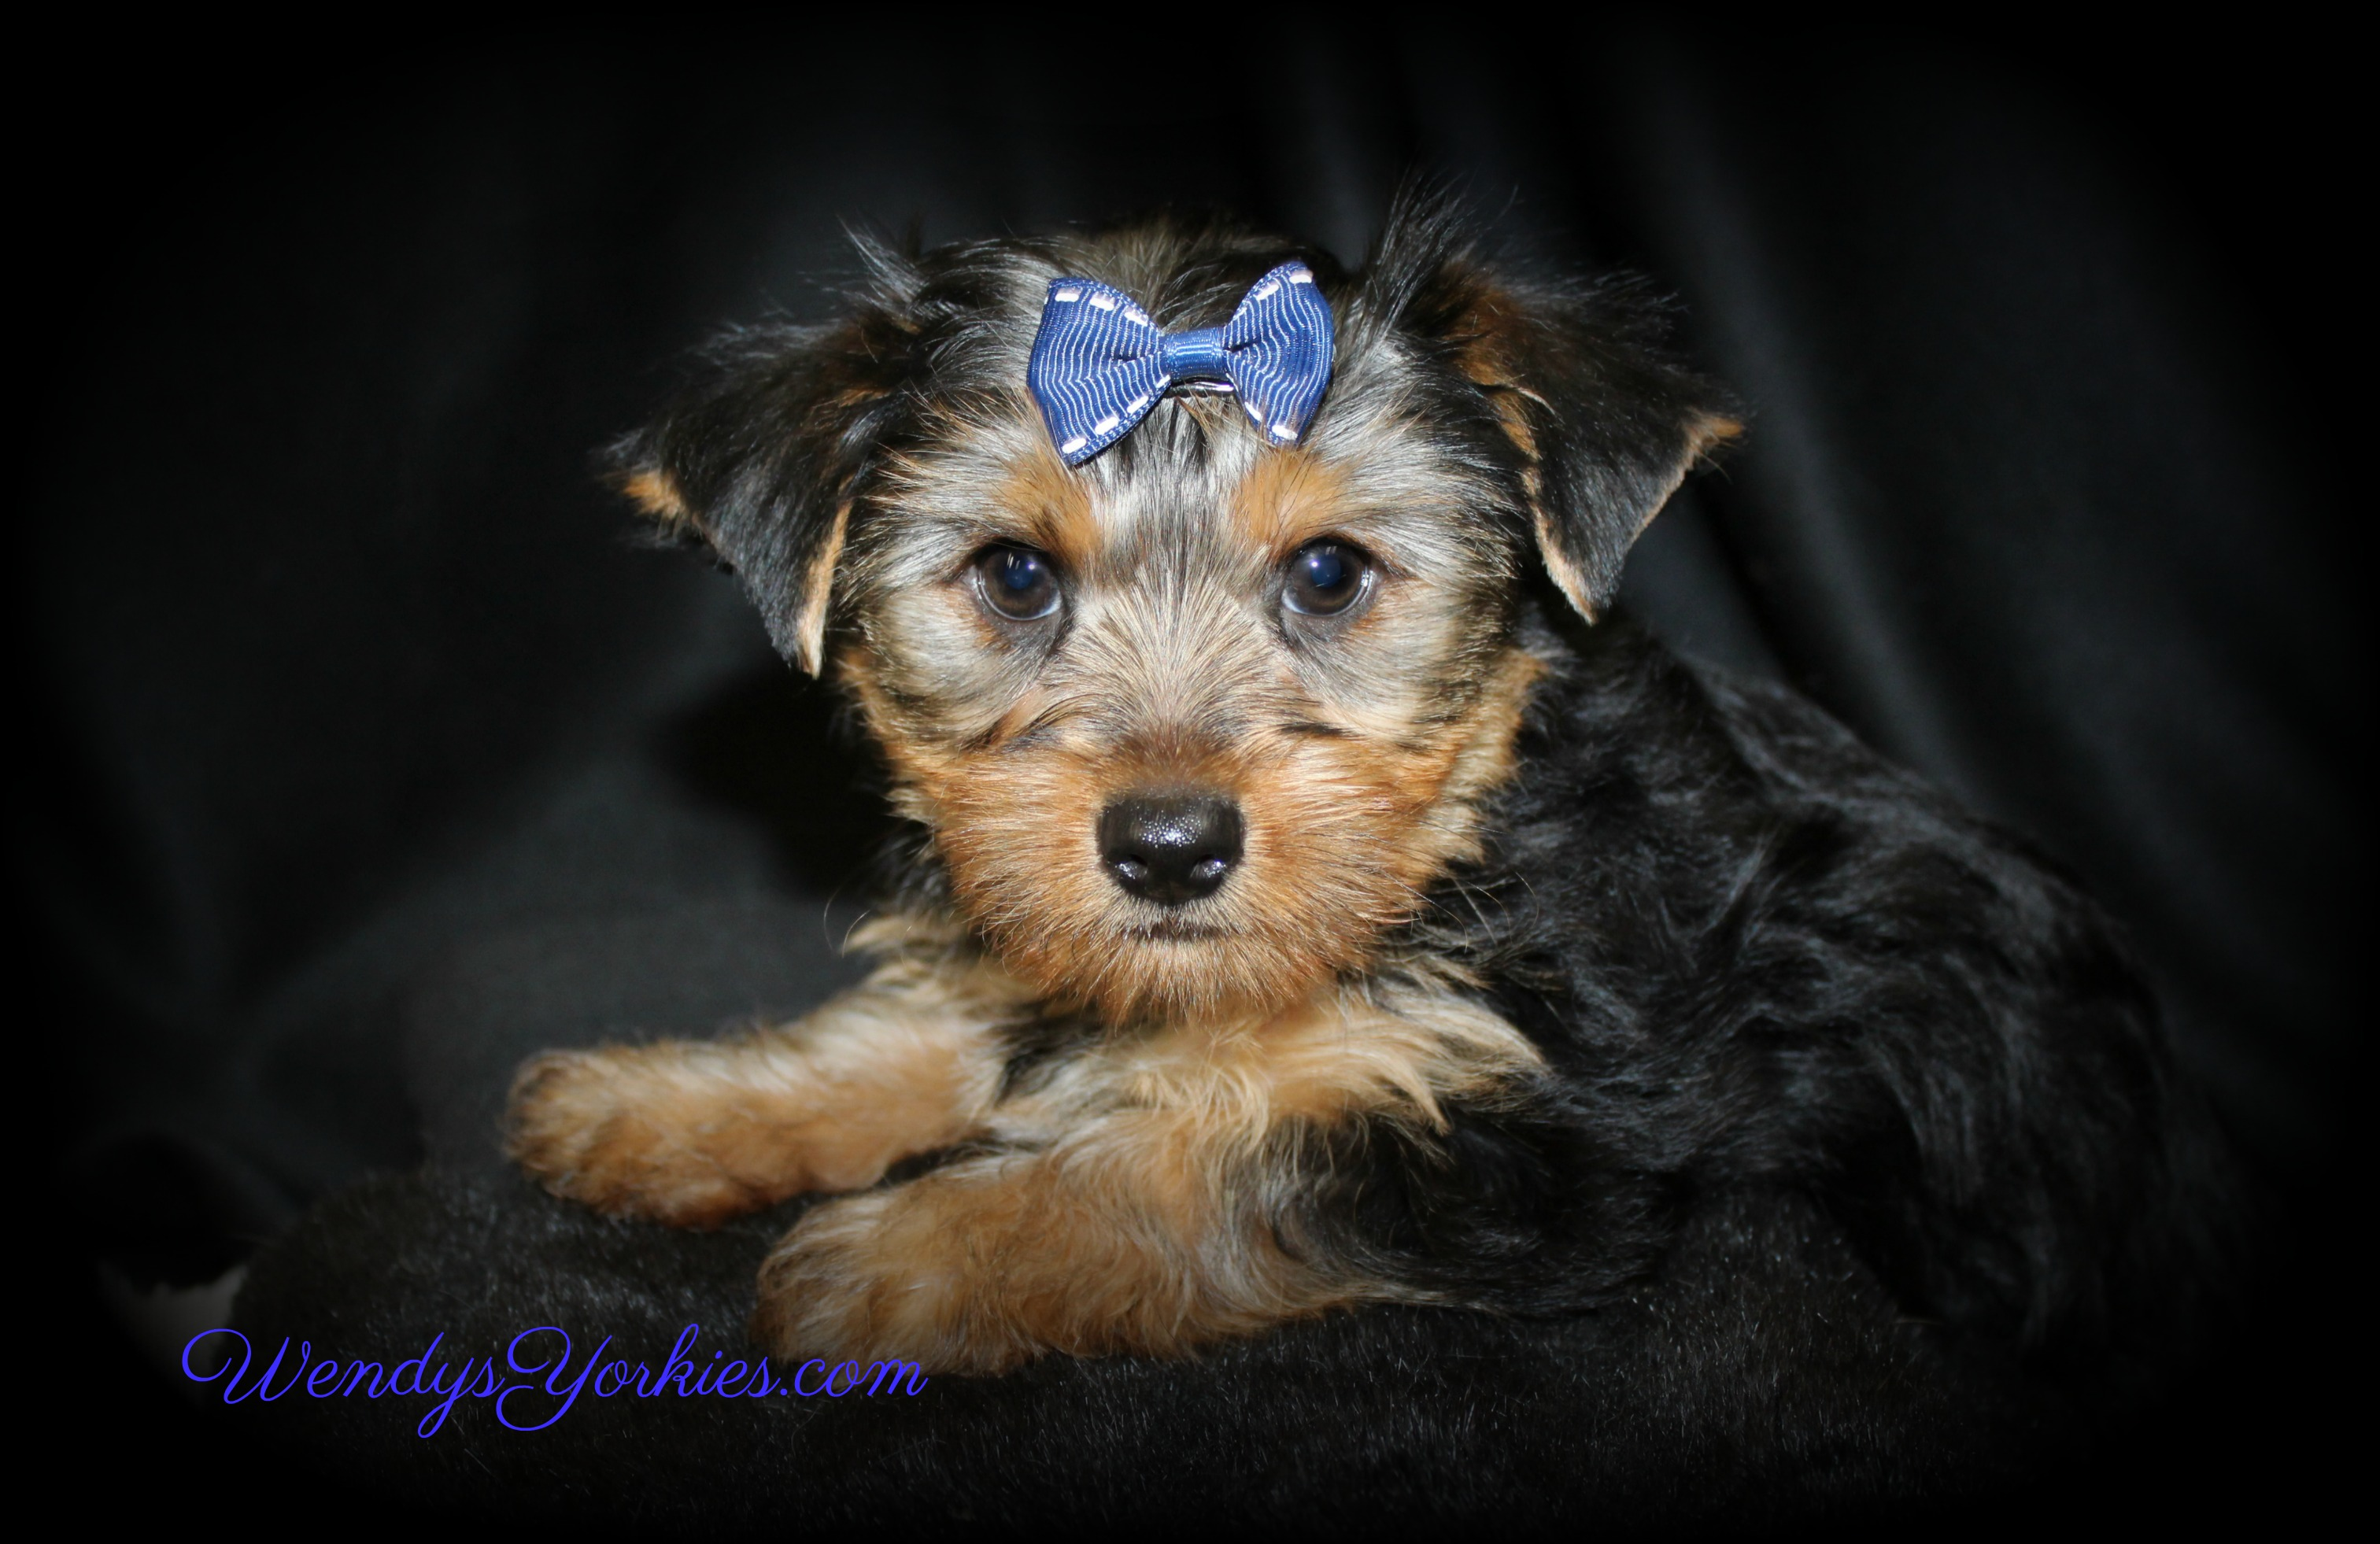 Male YOrkie puppy for sale, Tgm1, WendysYorkies.com